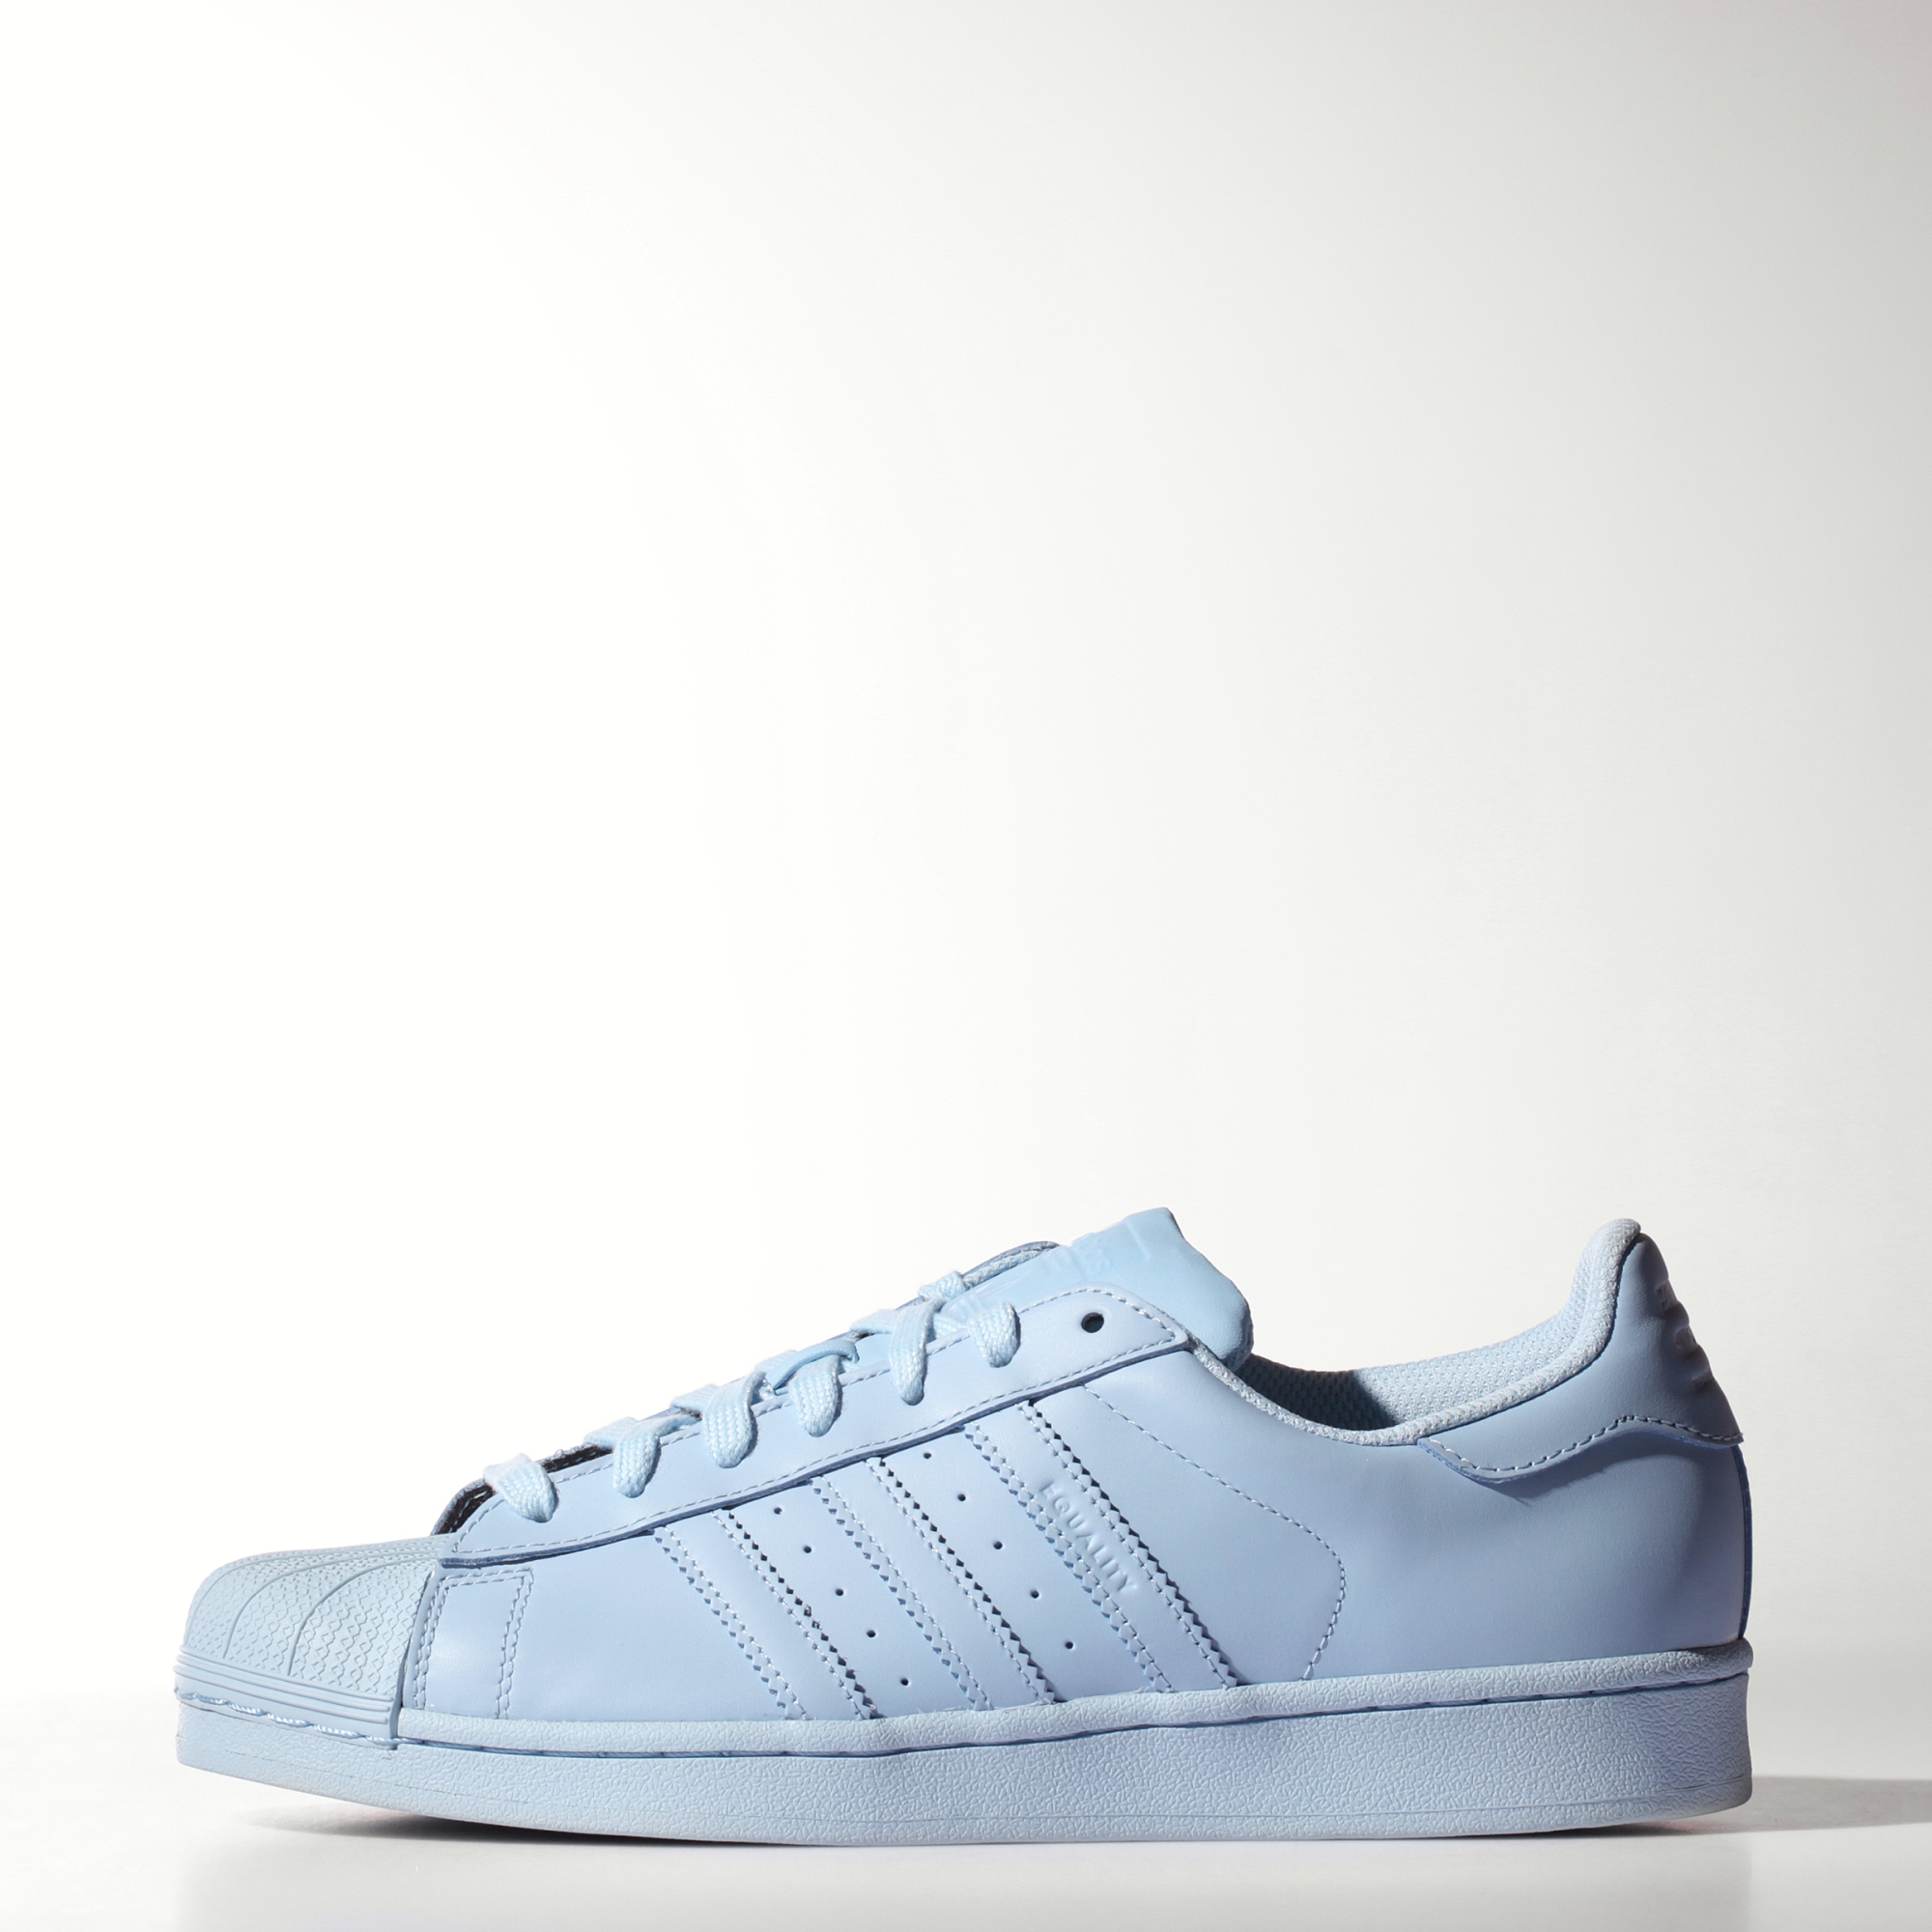 adidas Superstar Light Blue White BY3716